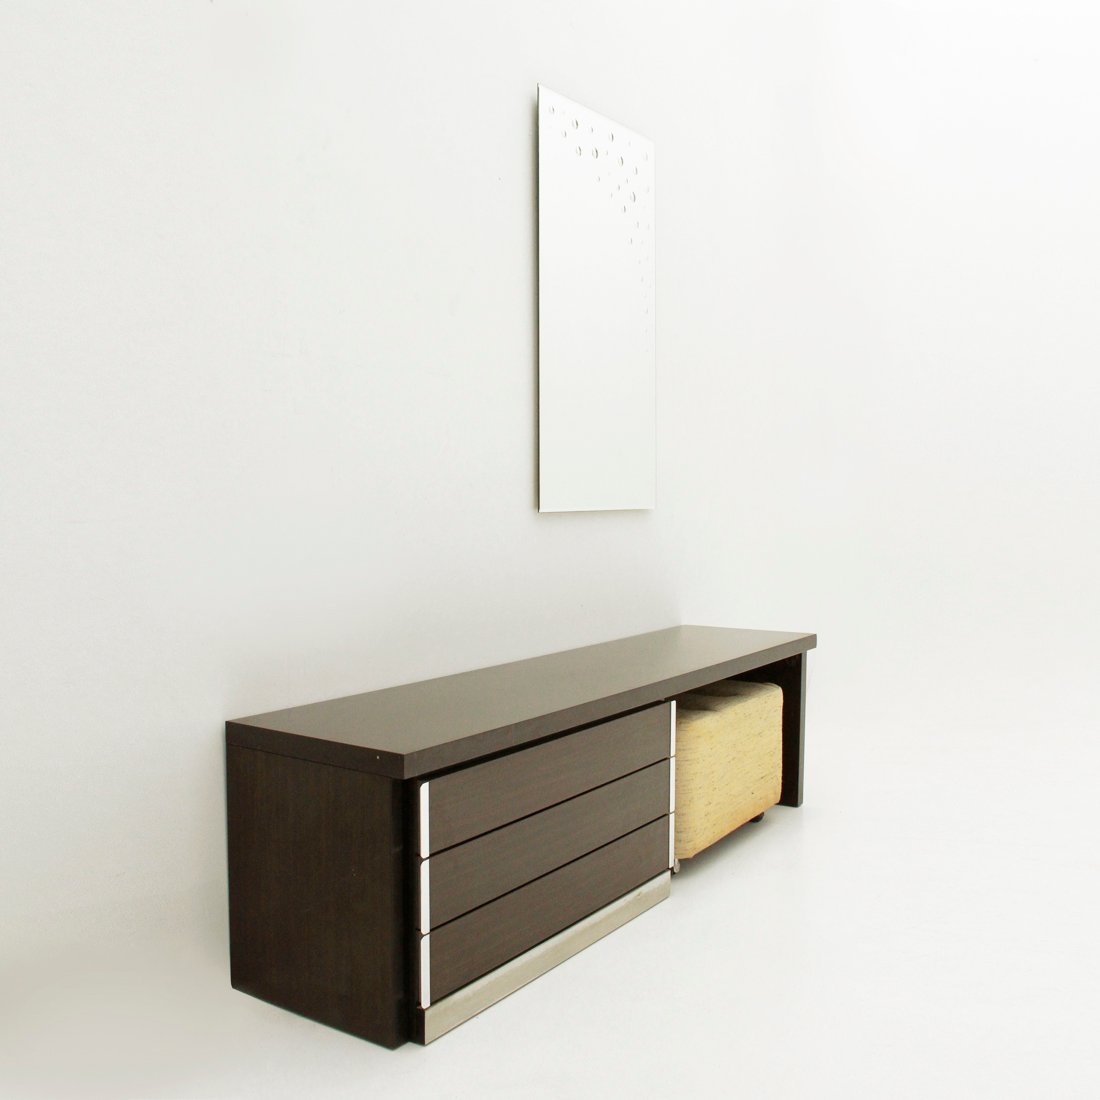 Space age vanity desk with mirror pouf 1970s for sale for Vanity desk no mirror